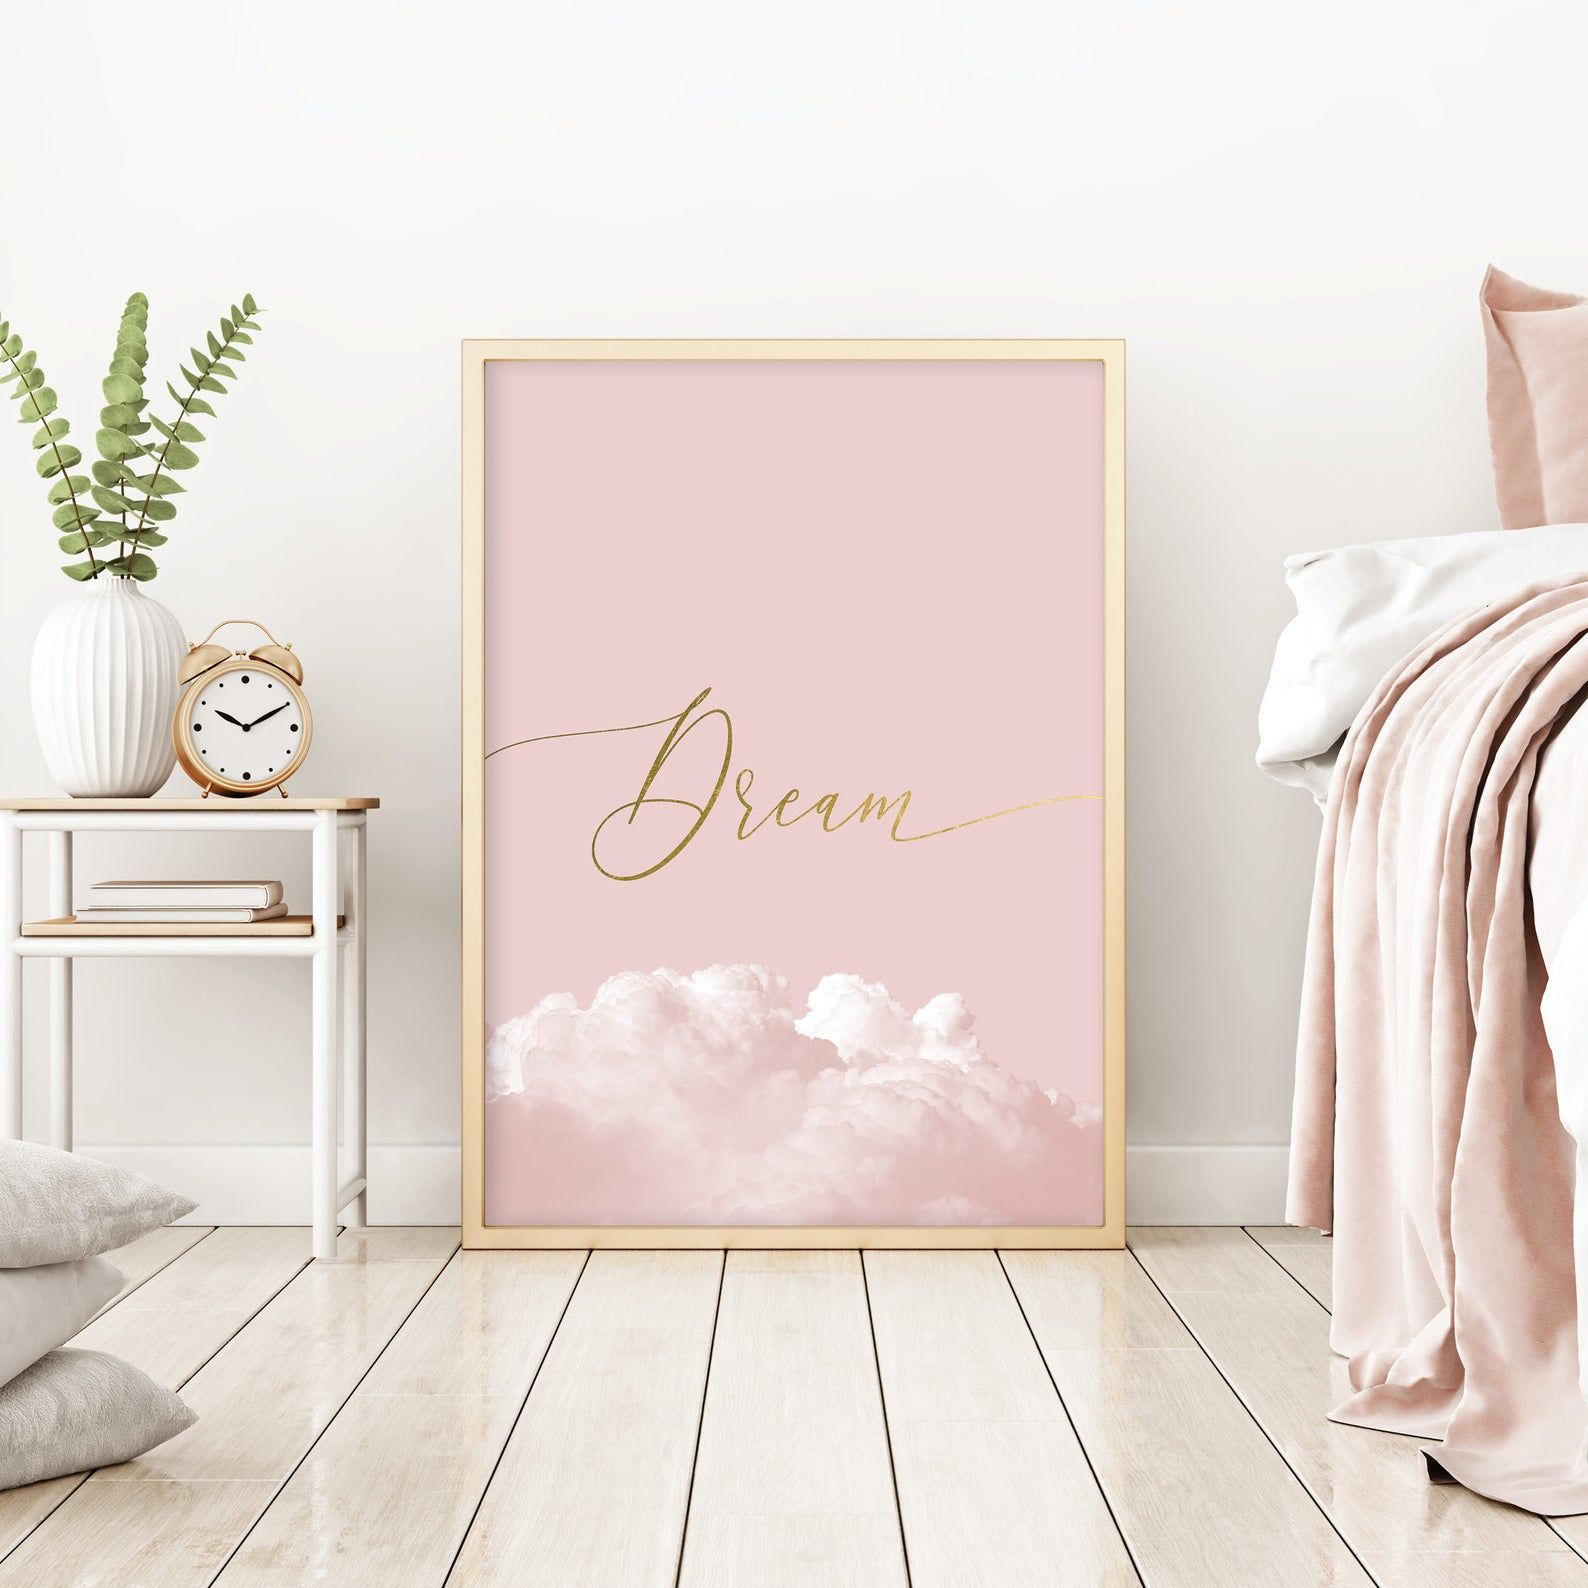 Blush Pink And Gold Bedroom Wall Decor Printable Dream Poster Etsy In 2020 Gold Bedroom Wall Decor Bedroom Pink Bedroom Walls